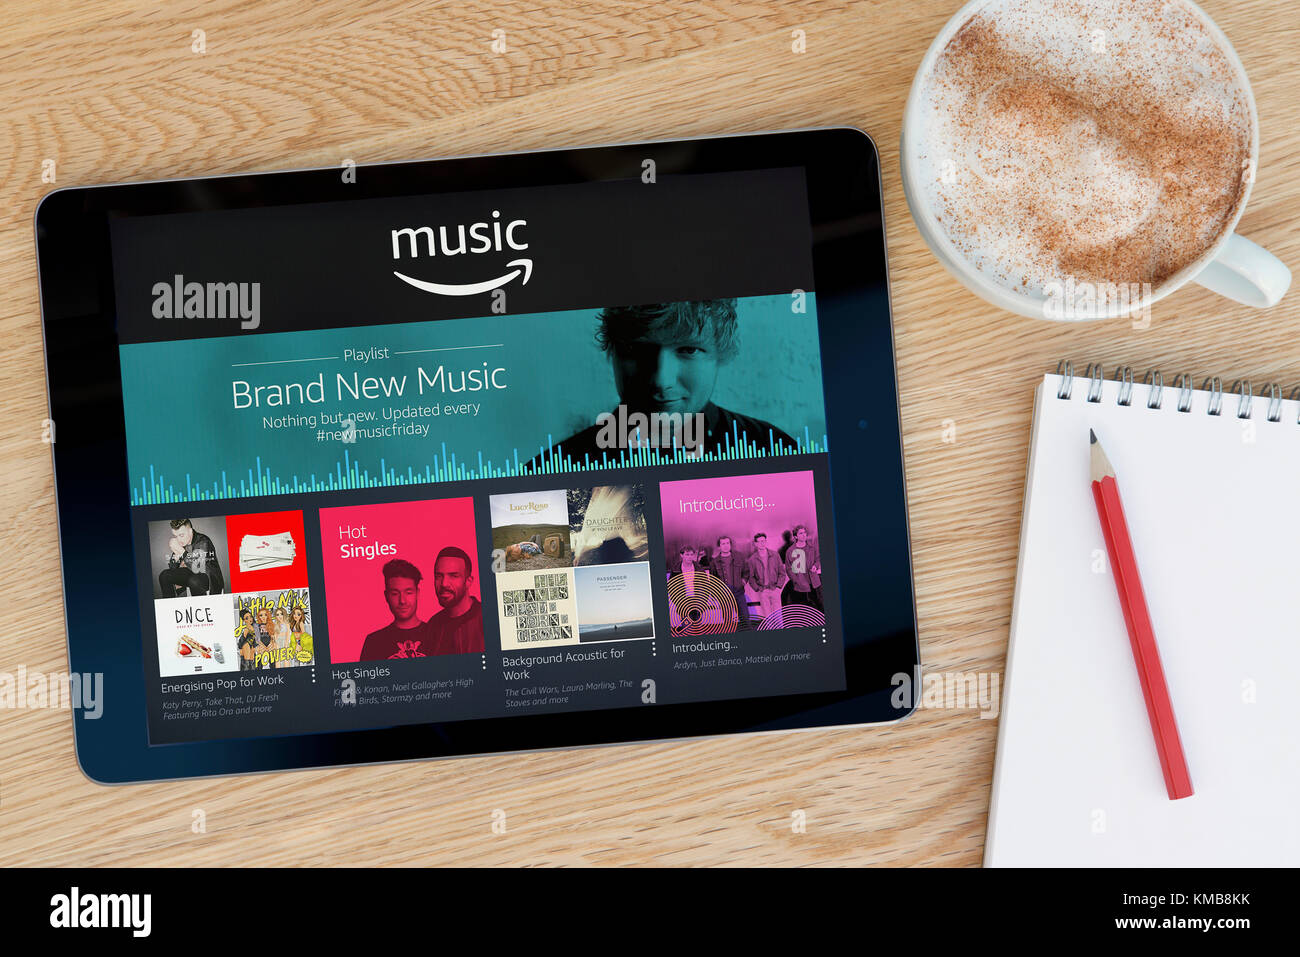 The Amazon Music app features on an iPad tablet device which rests on a wooden table beside a notepad and pencil - Stock Image